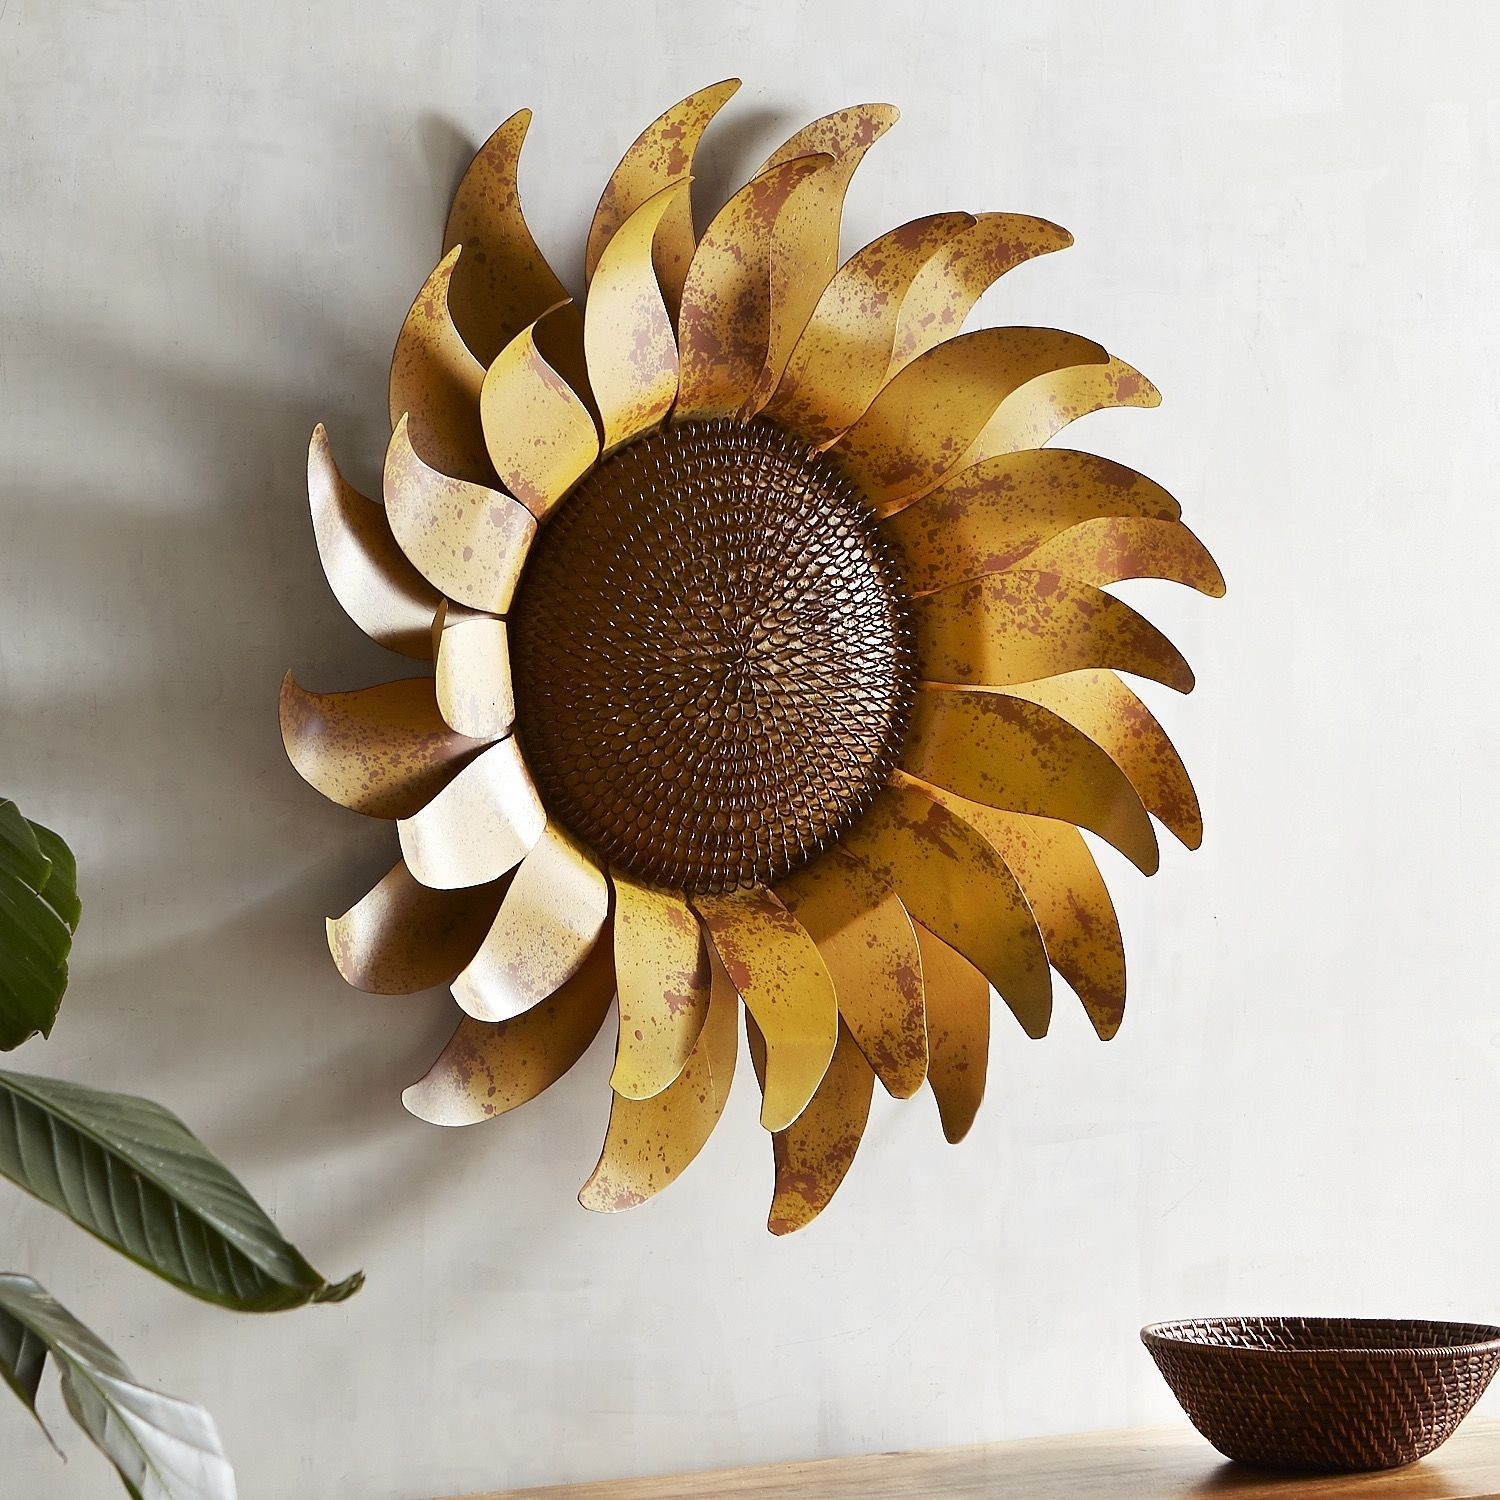 Best Sunflower Wall Decor Decorating Inspiration Giant Design Ideas inside Sunflower Wall Art (Image 5 of 20)